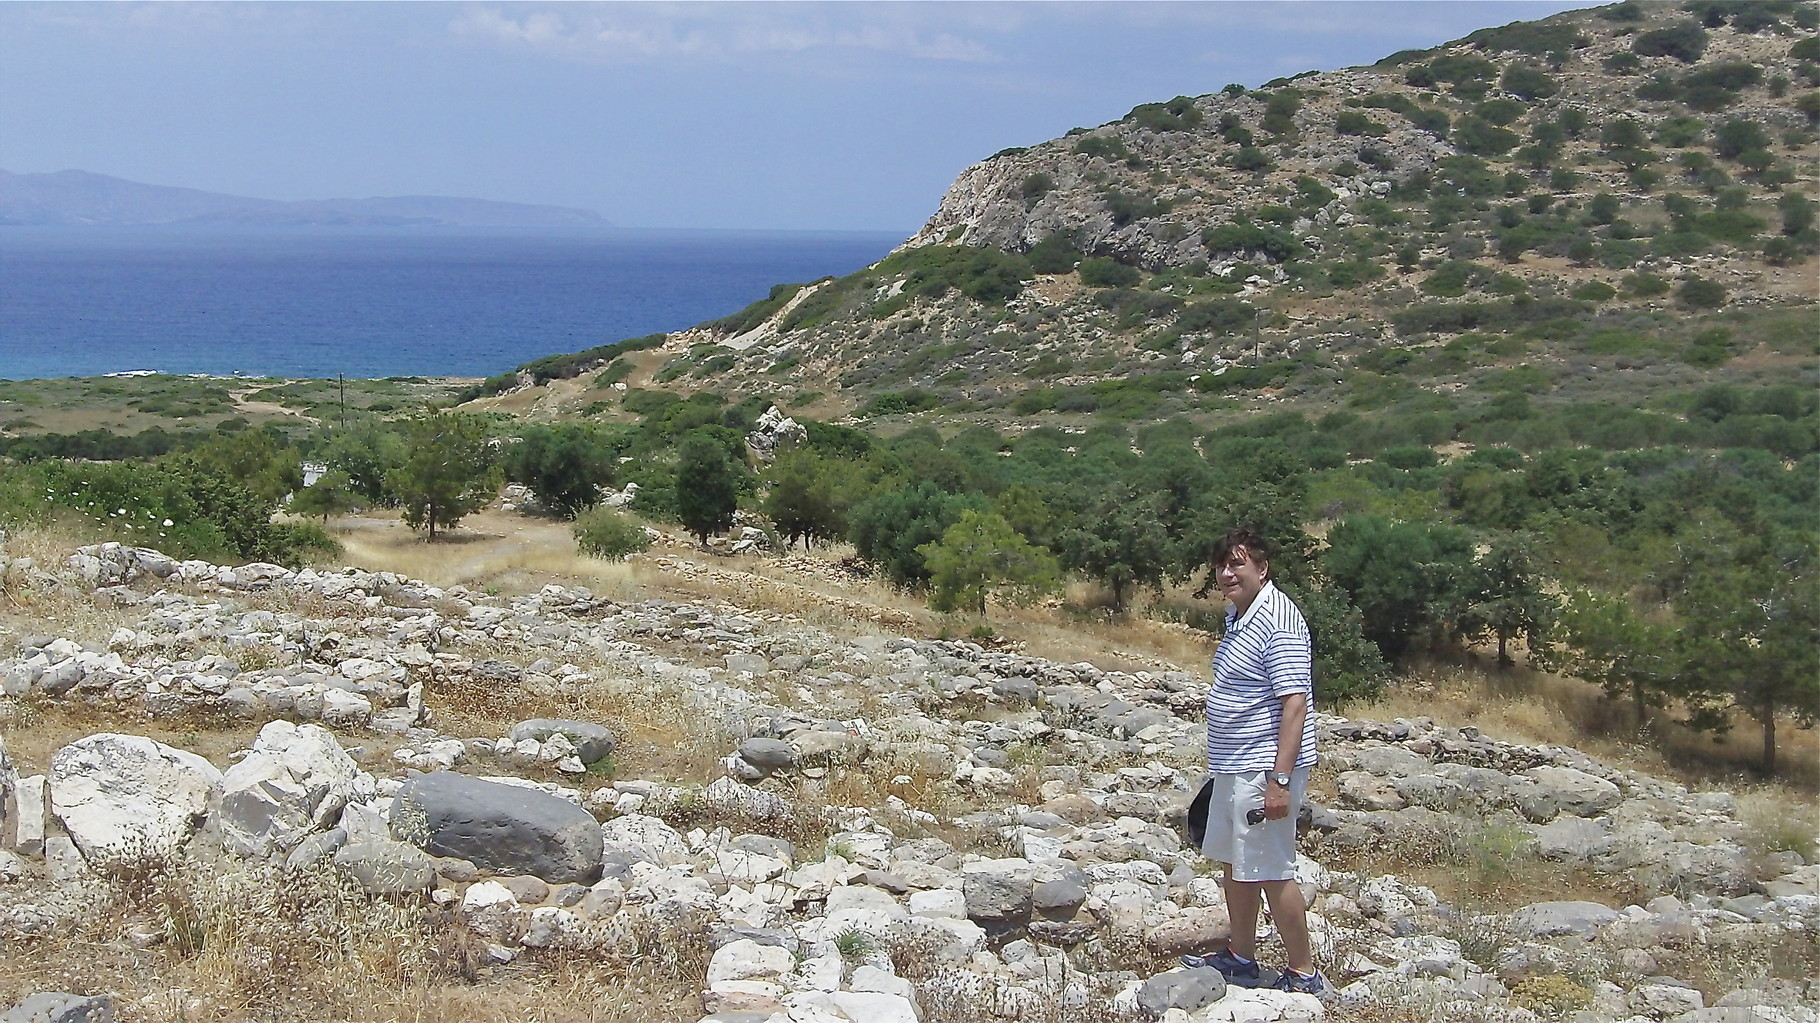 John near the palace, ancient city of Gournia,  town occupied from 2500 BC to ~1000 BC.